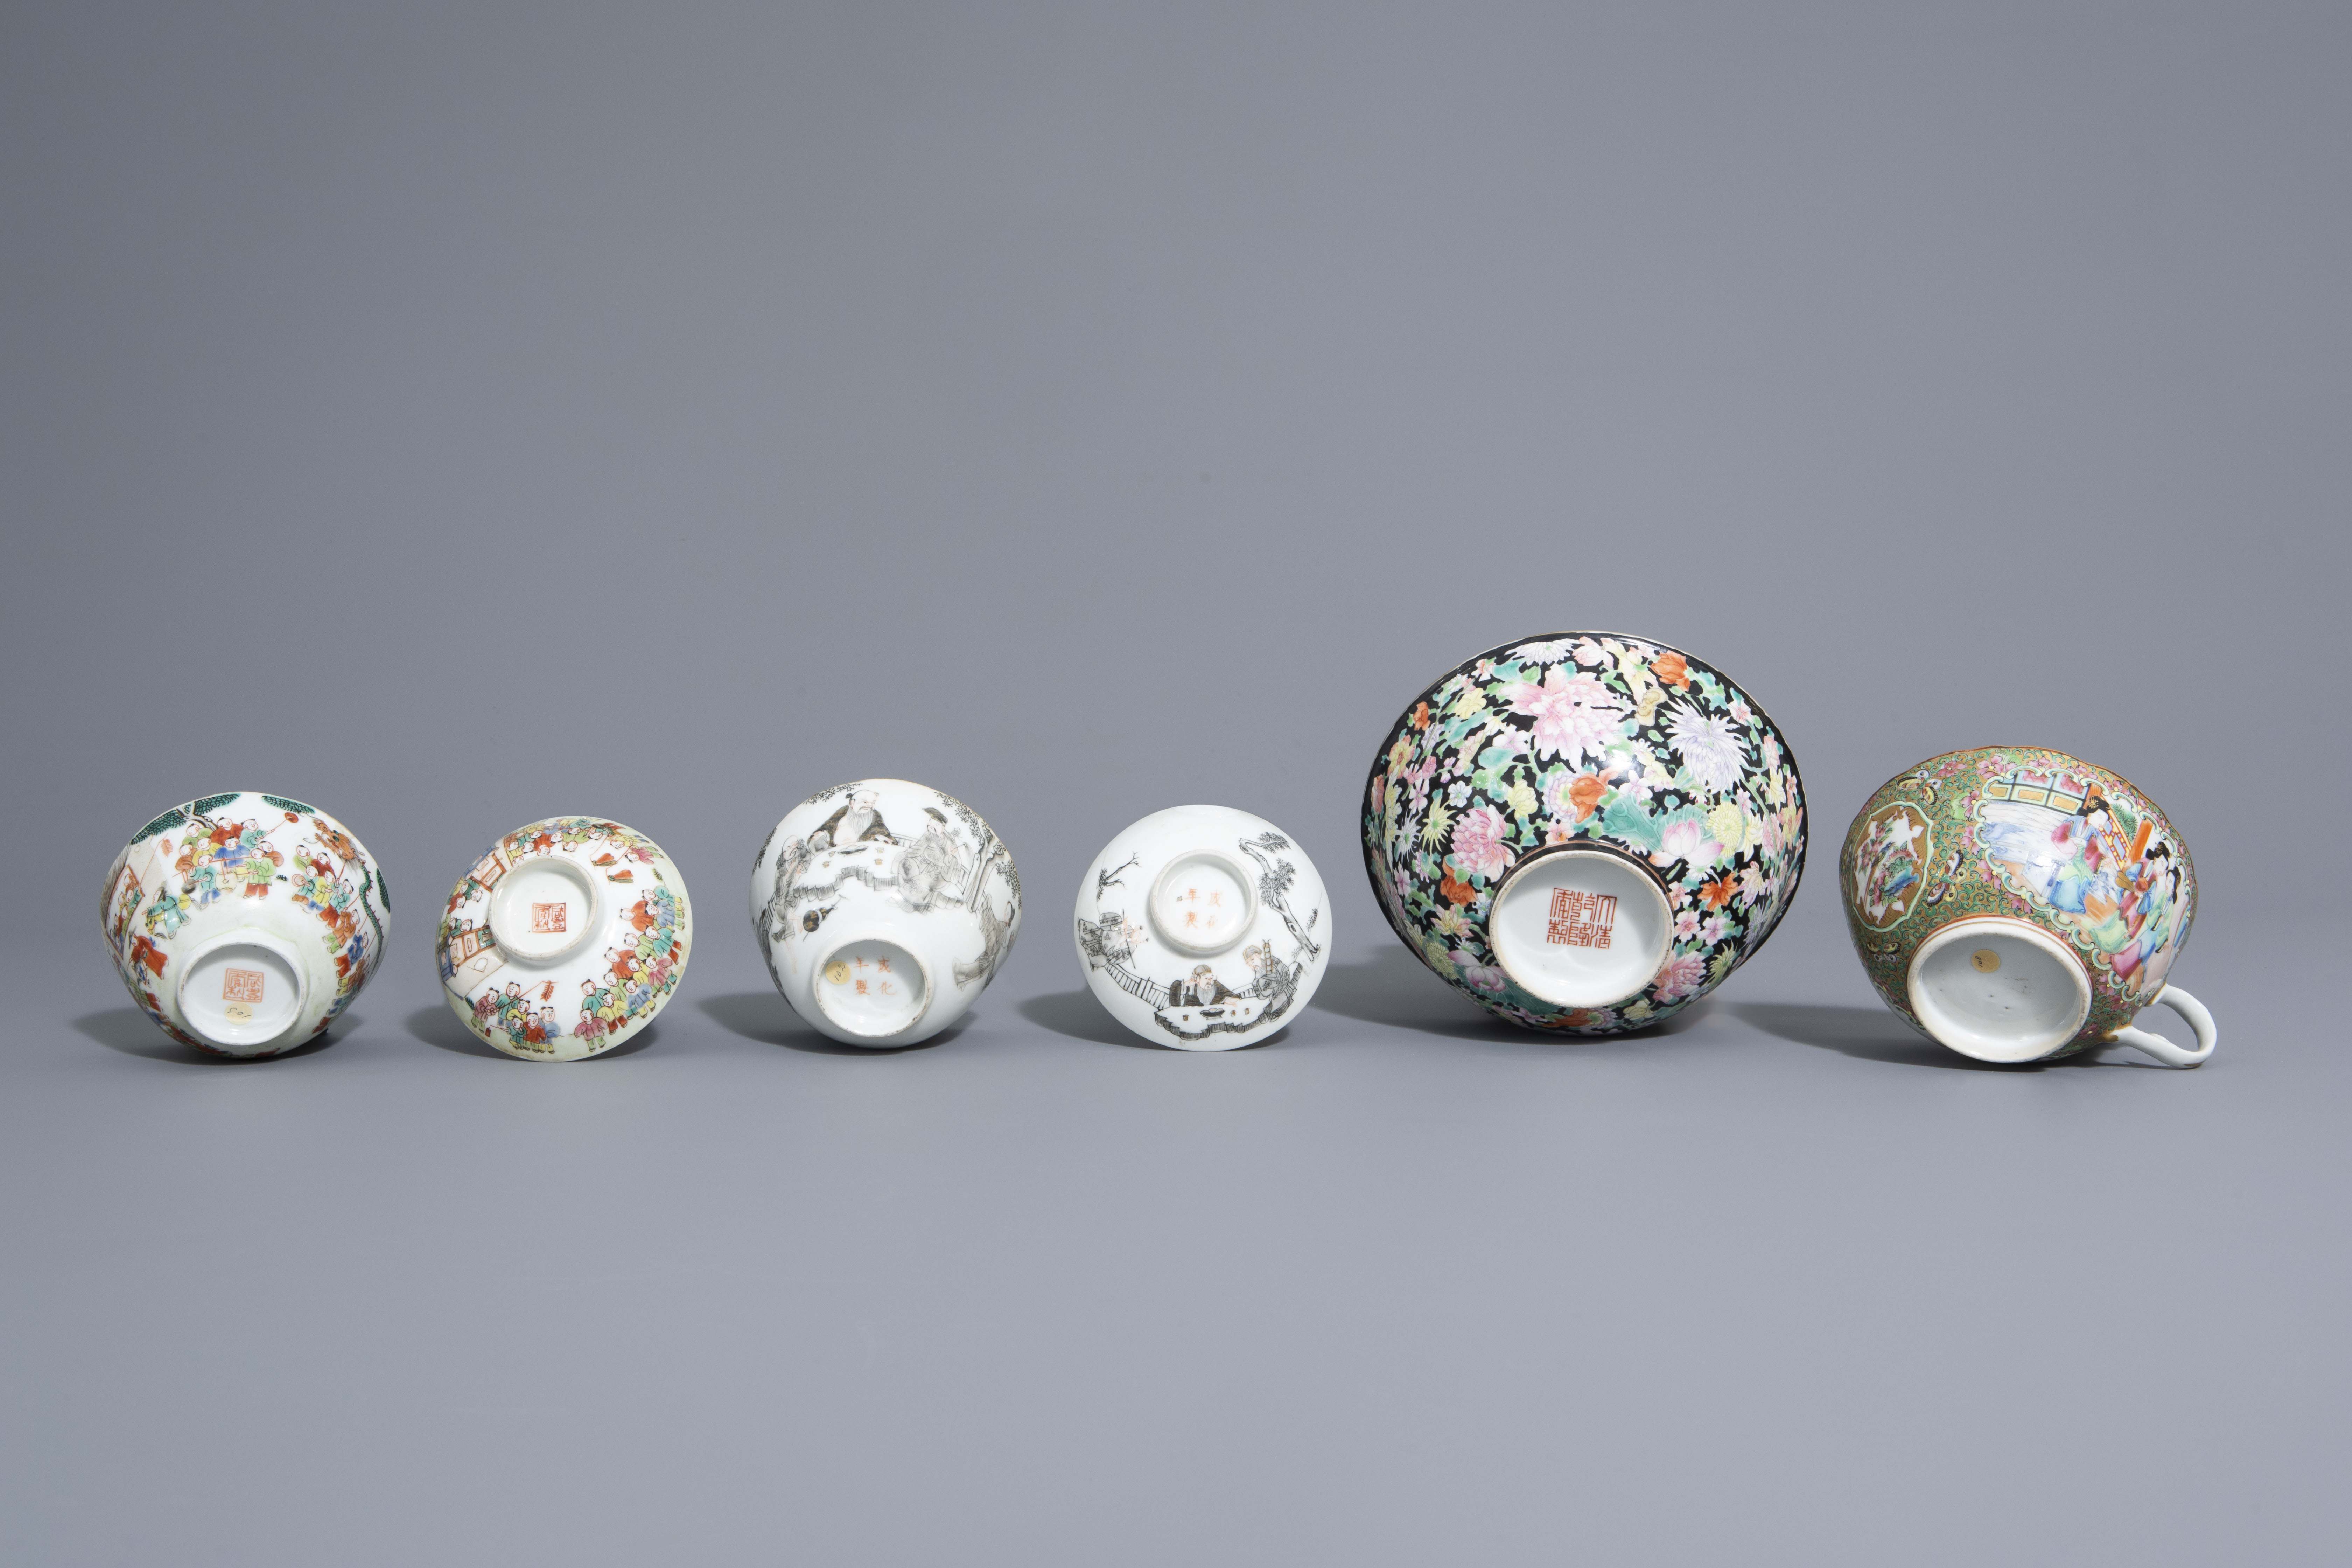 Three Chinese famille rose and grisaille bowls and a Canton bowl on stand, 19th/20th C. - Image 7 of 9